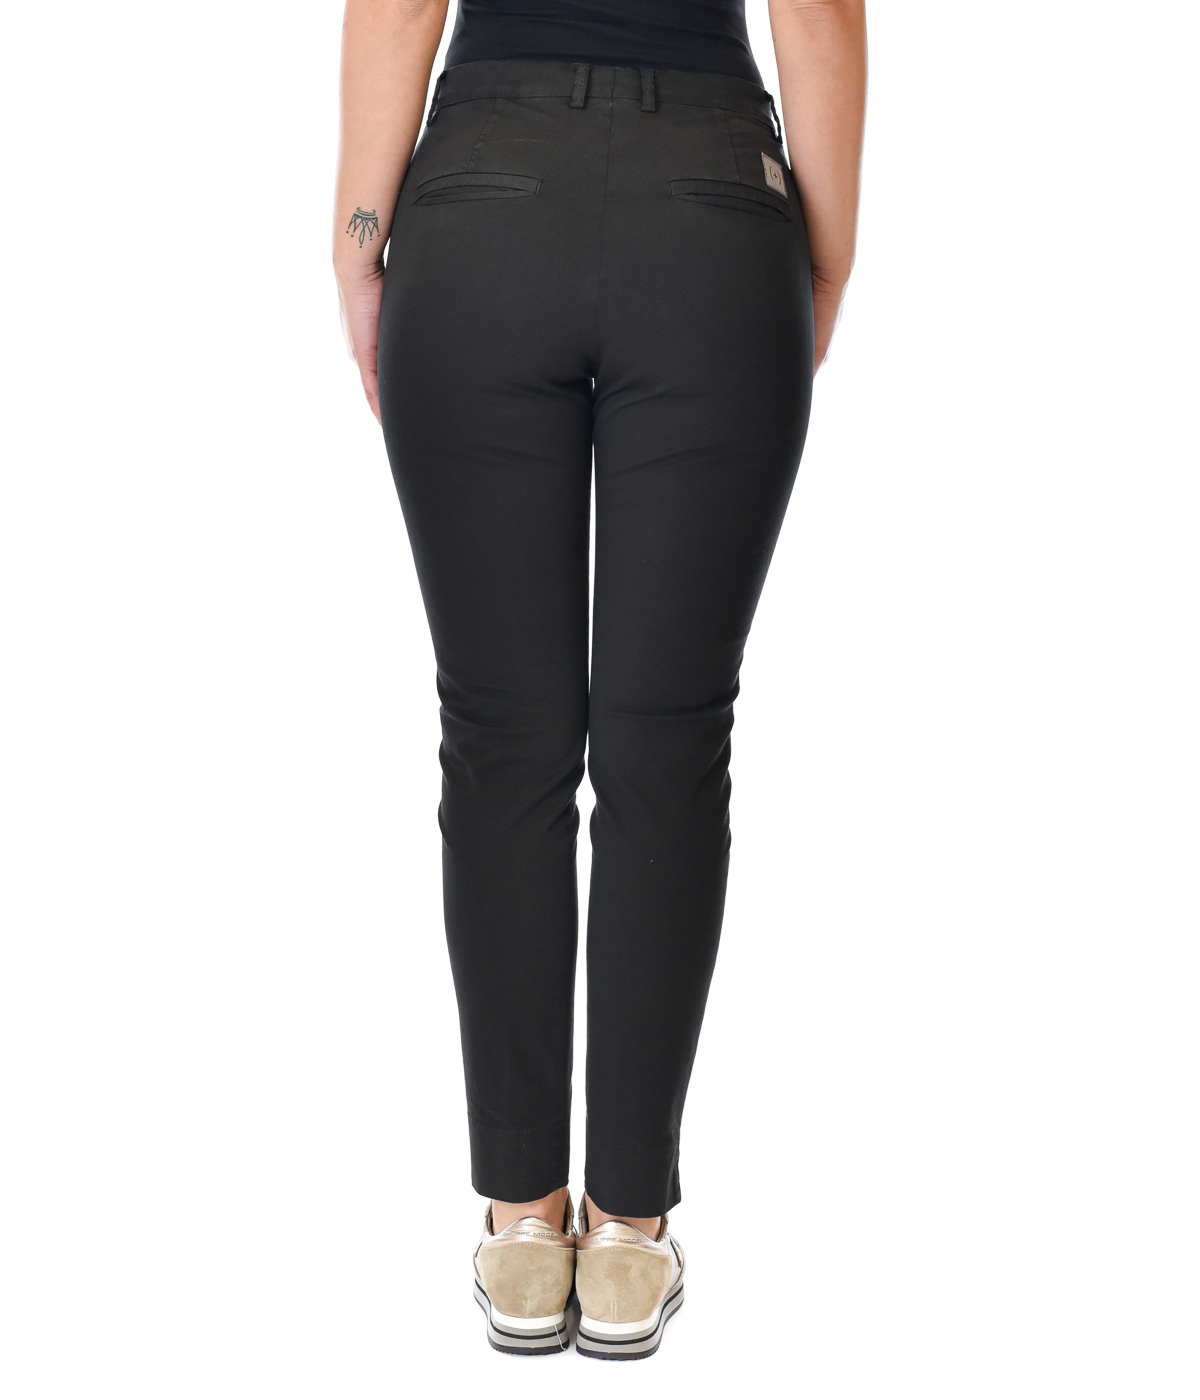 (+) PEOPLE PANTALONE DONNA NERO SKINNY FIT IN COTONE